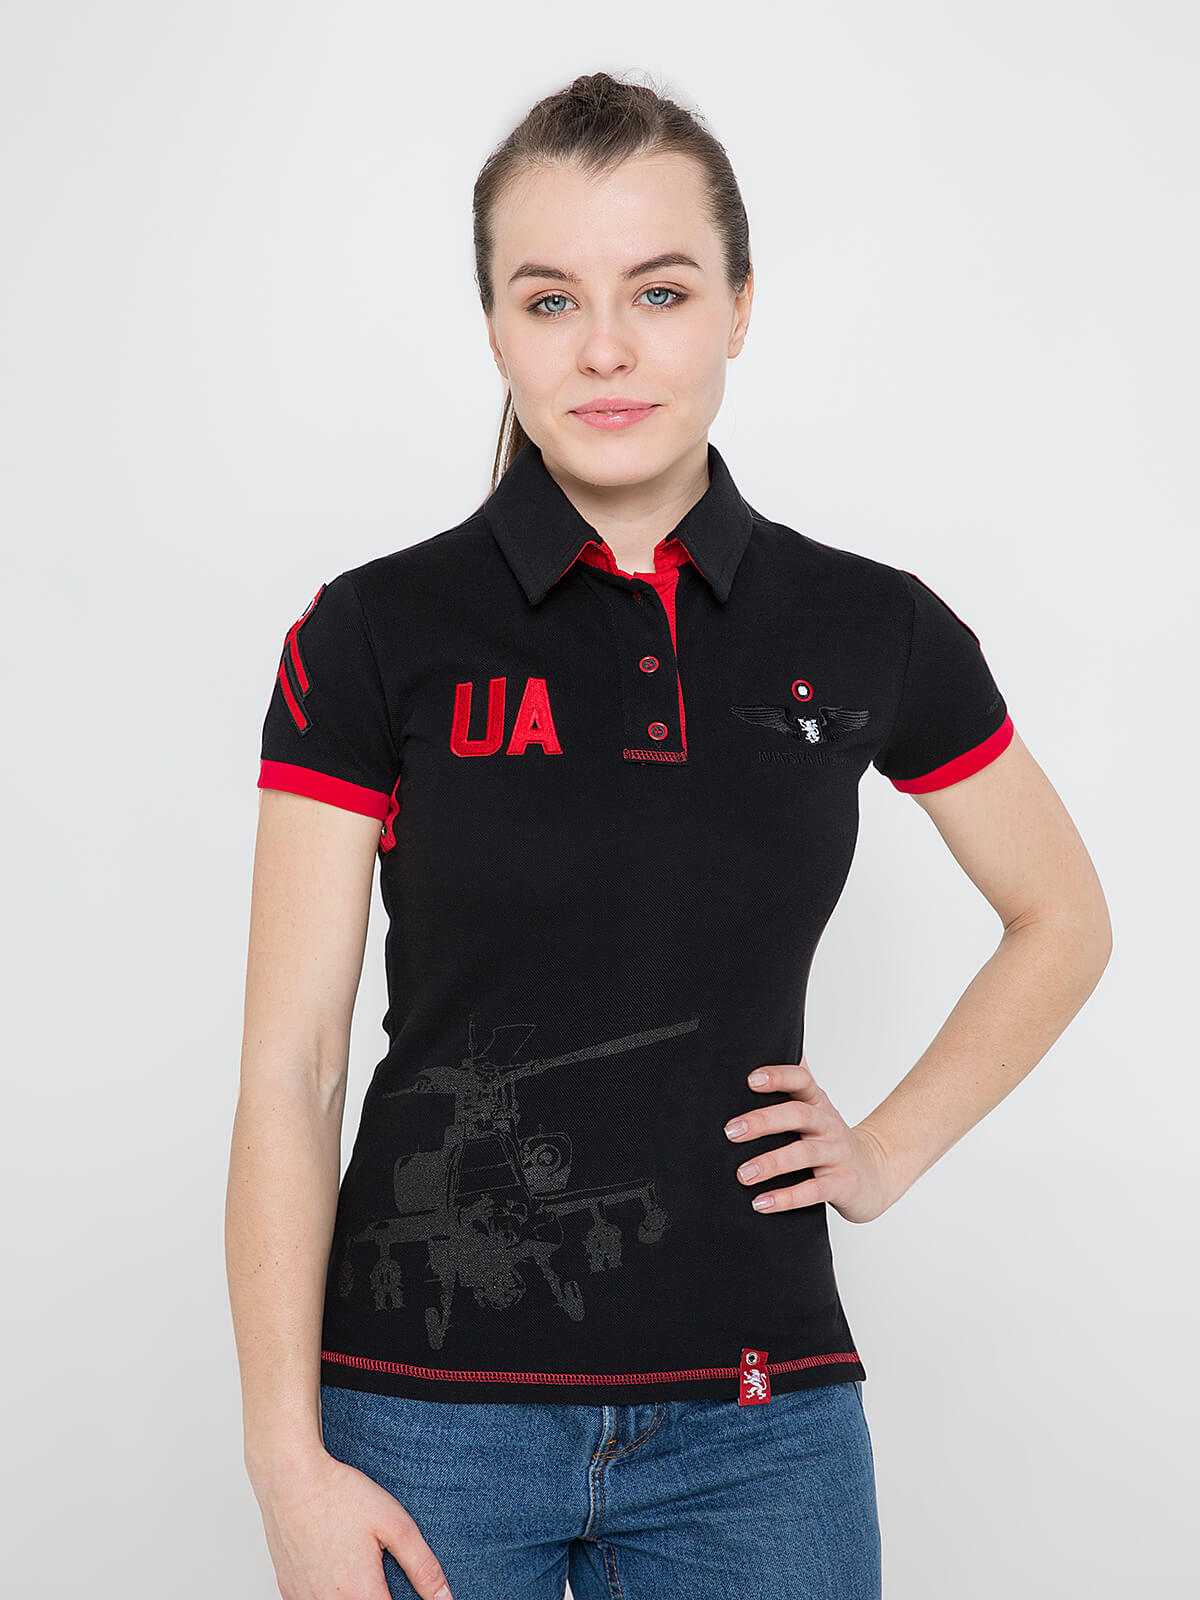 Women's Polo Shirt 12 Brigade (The Dragon Slayer). Color black. Pique fabric: 100% cotton.